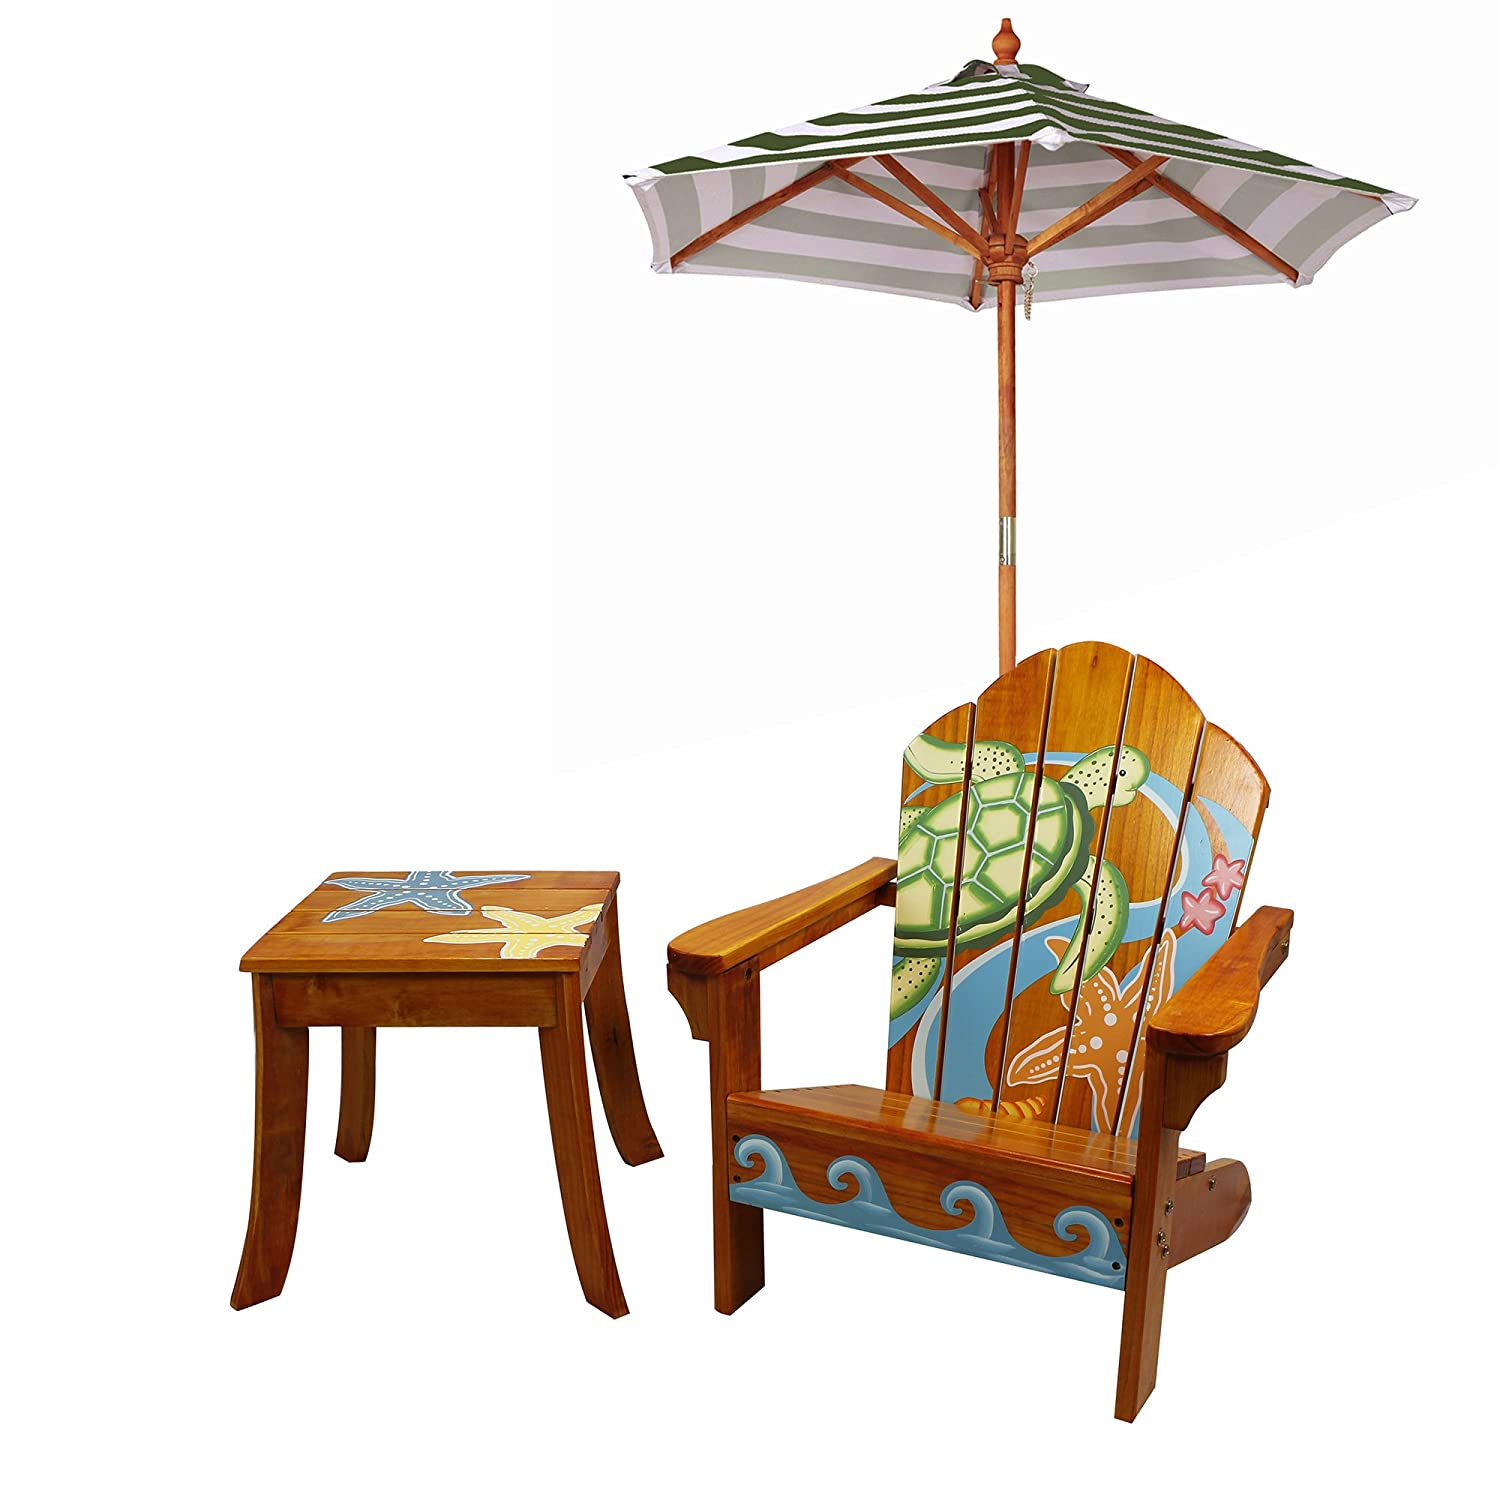 Amazon.com Winland - Outdoor Table and Adirondack Chair Set with Unbrella - Beach Summer Toys \u0026 Games  sc 1 st  Amazon.com & Amazon.com: Winland - Outdoor Table and Adirondack Chair Set with ...